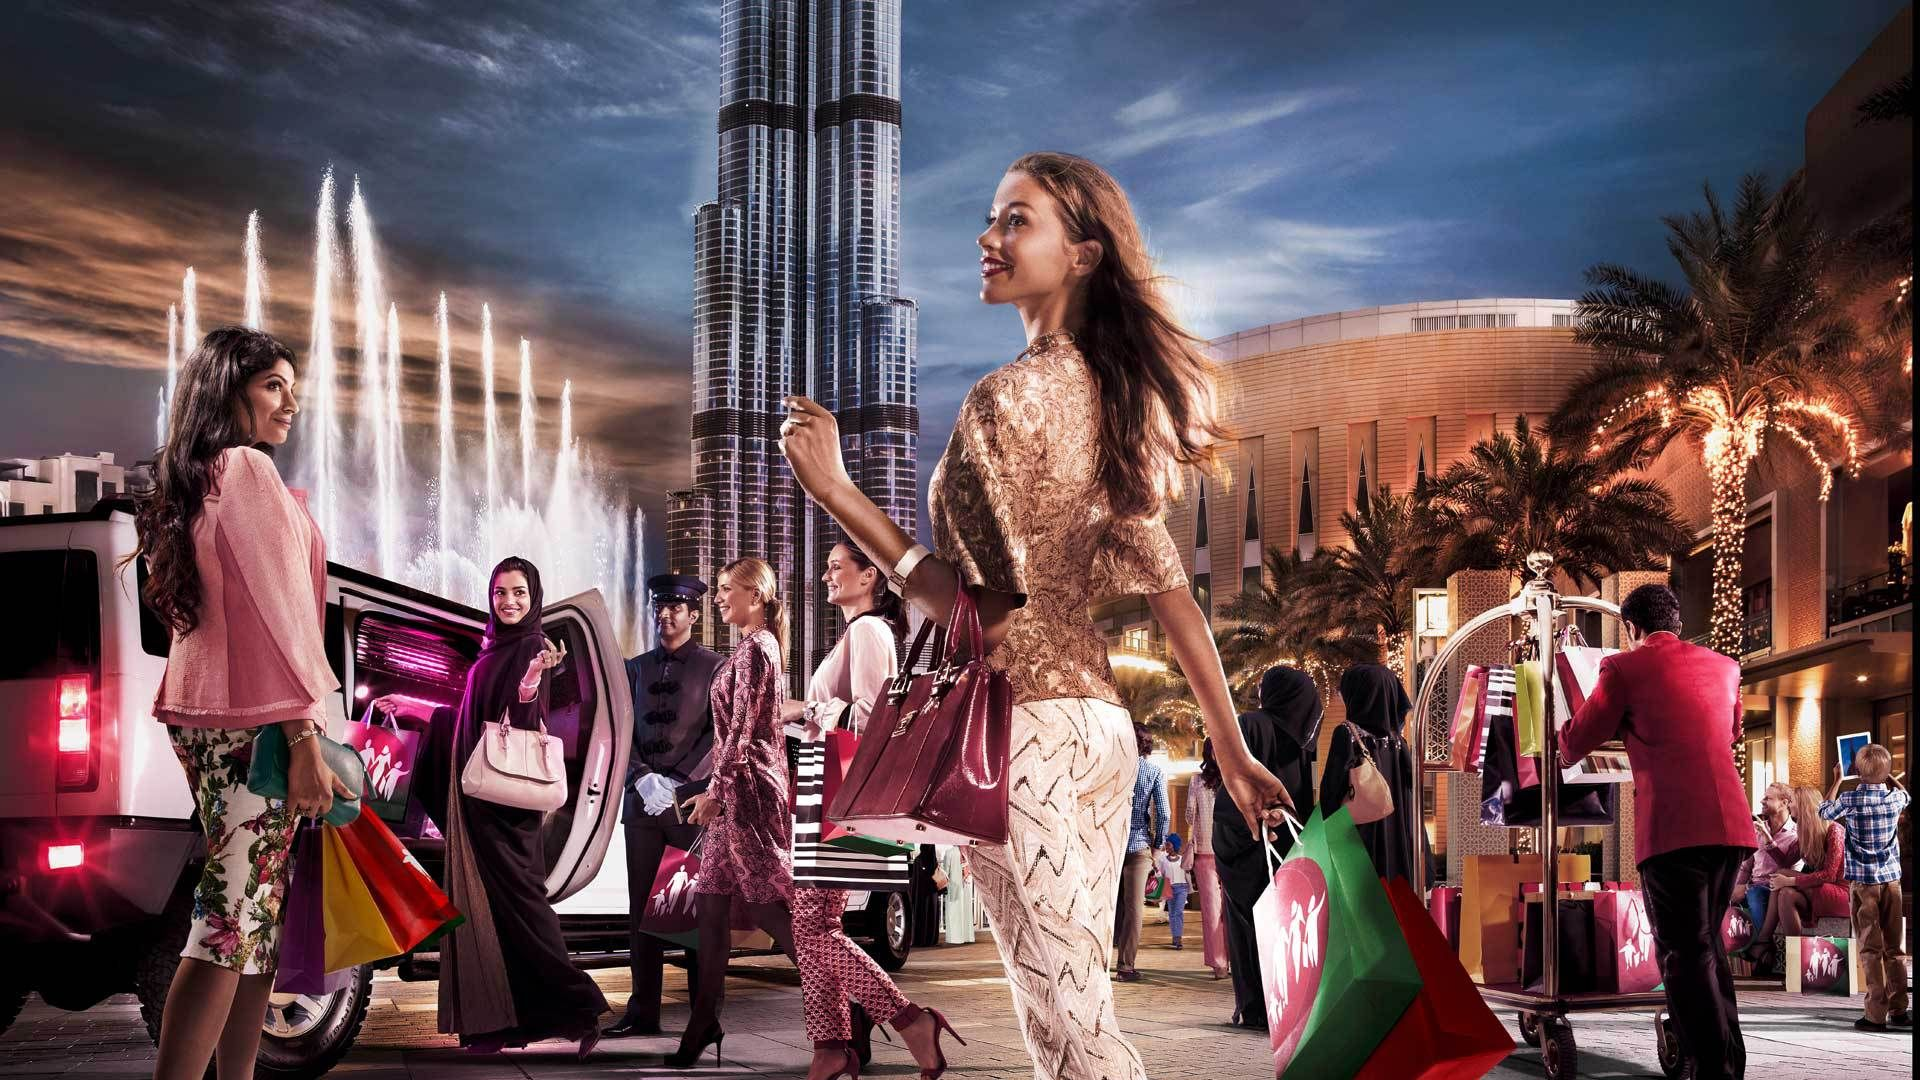 Pin by Another_phantom on 找 (With images) Dubai shopping